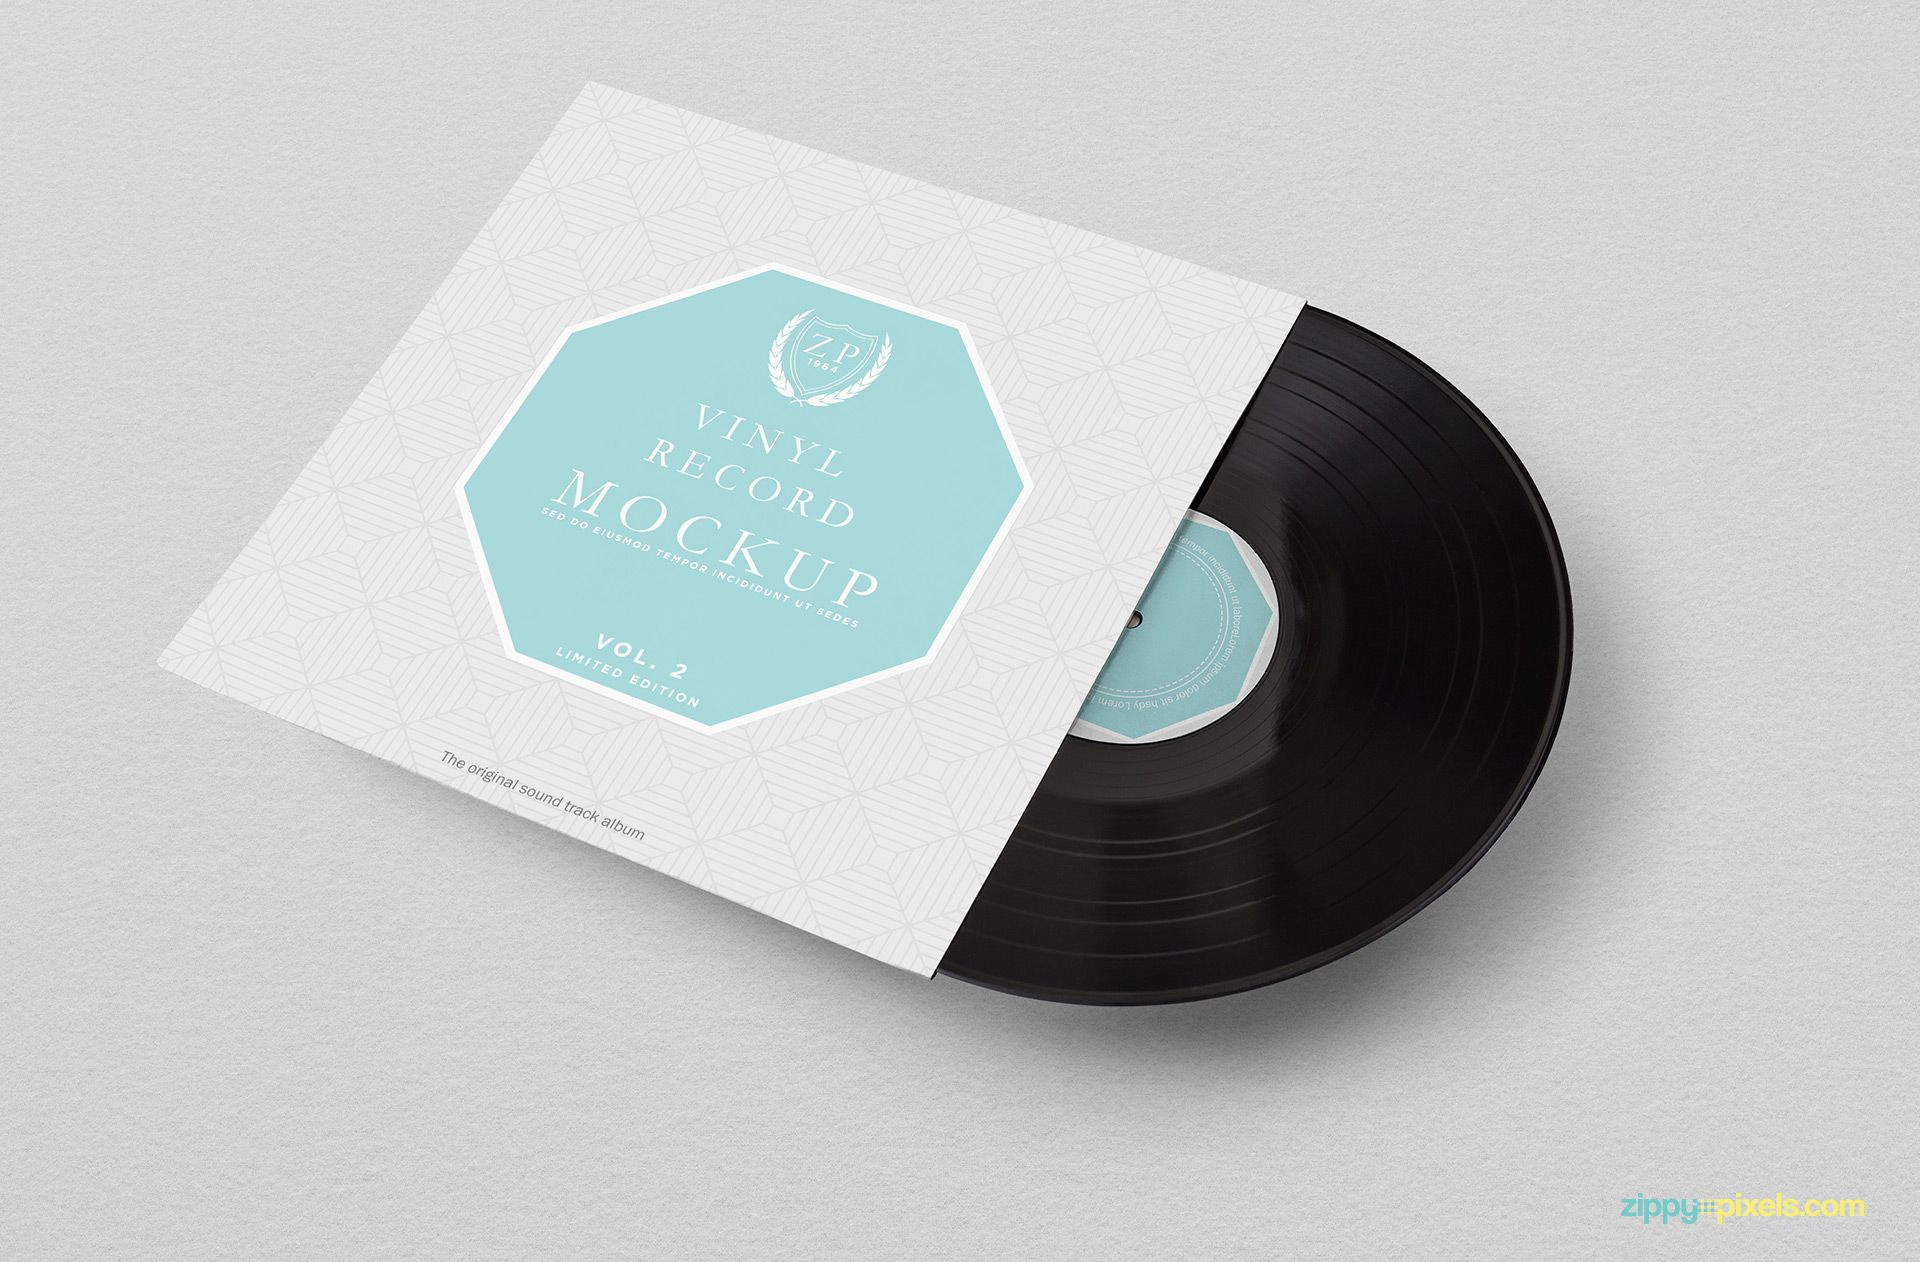 Attractive record mockup for your presentation needs.